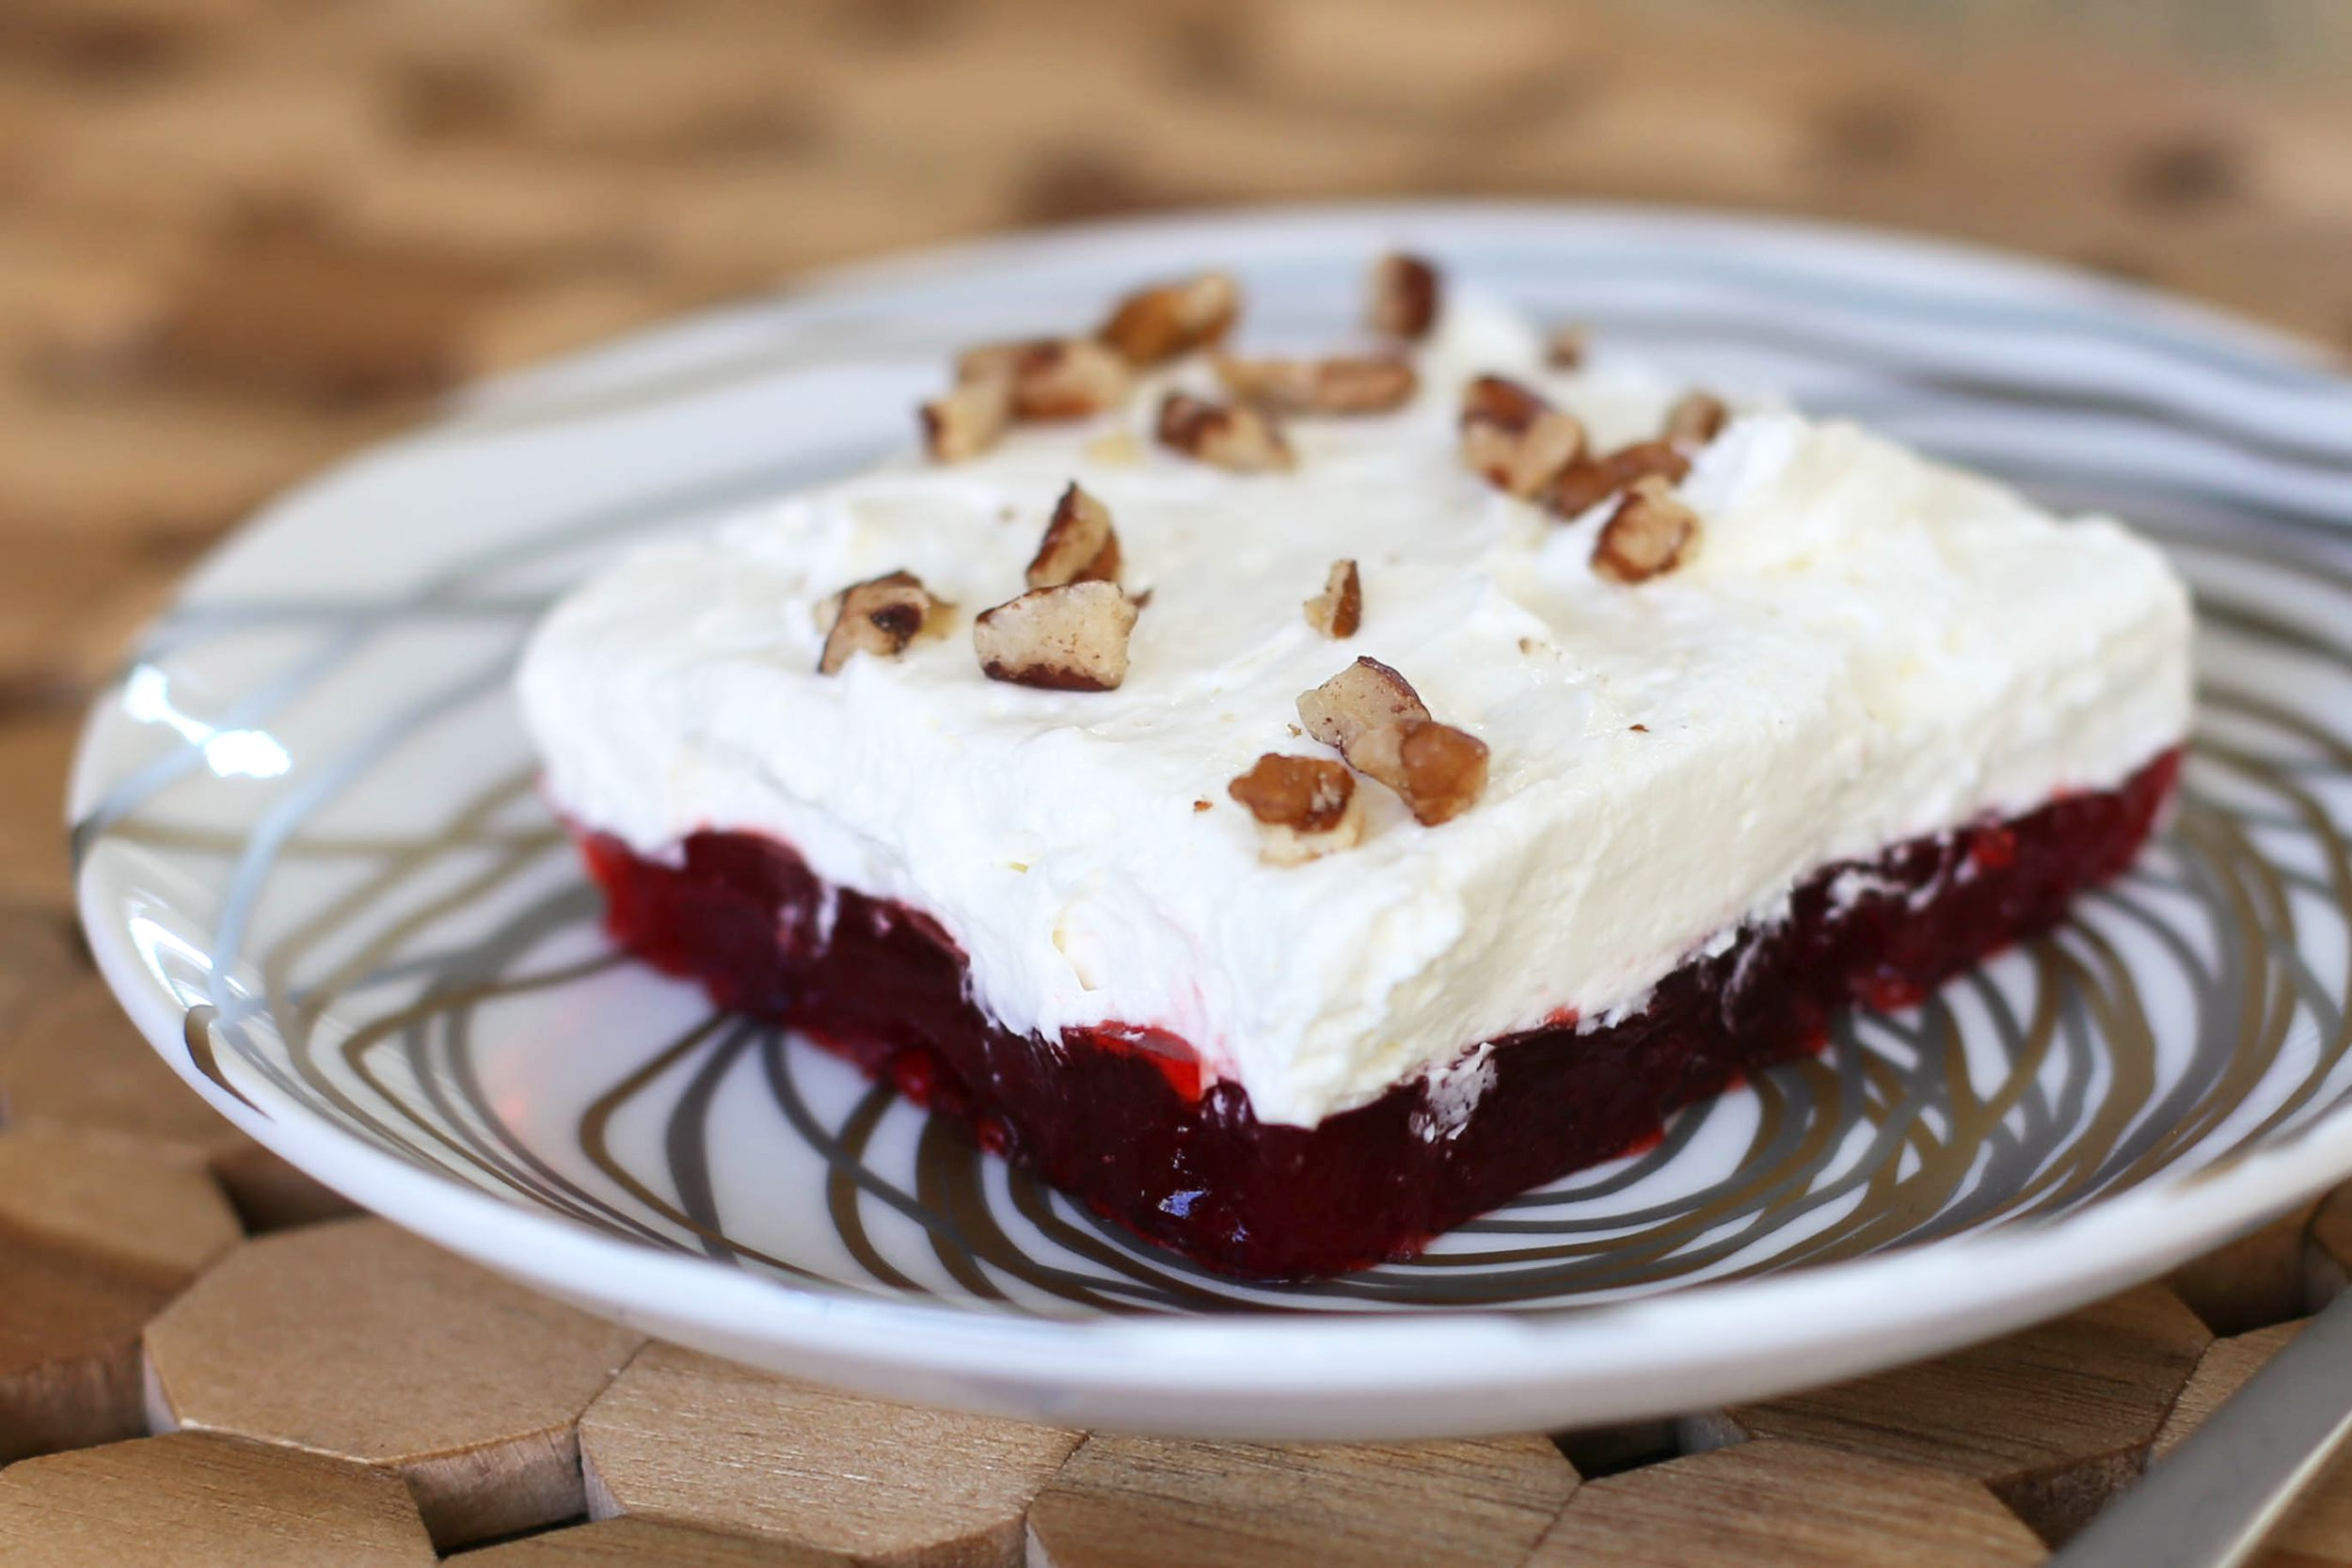 Cranberry Gelatin Salad Recipe Cream Cheese And Nuts